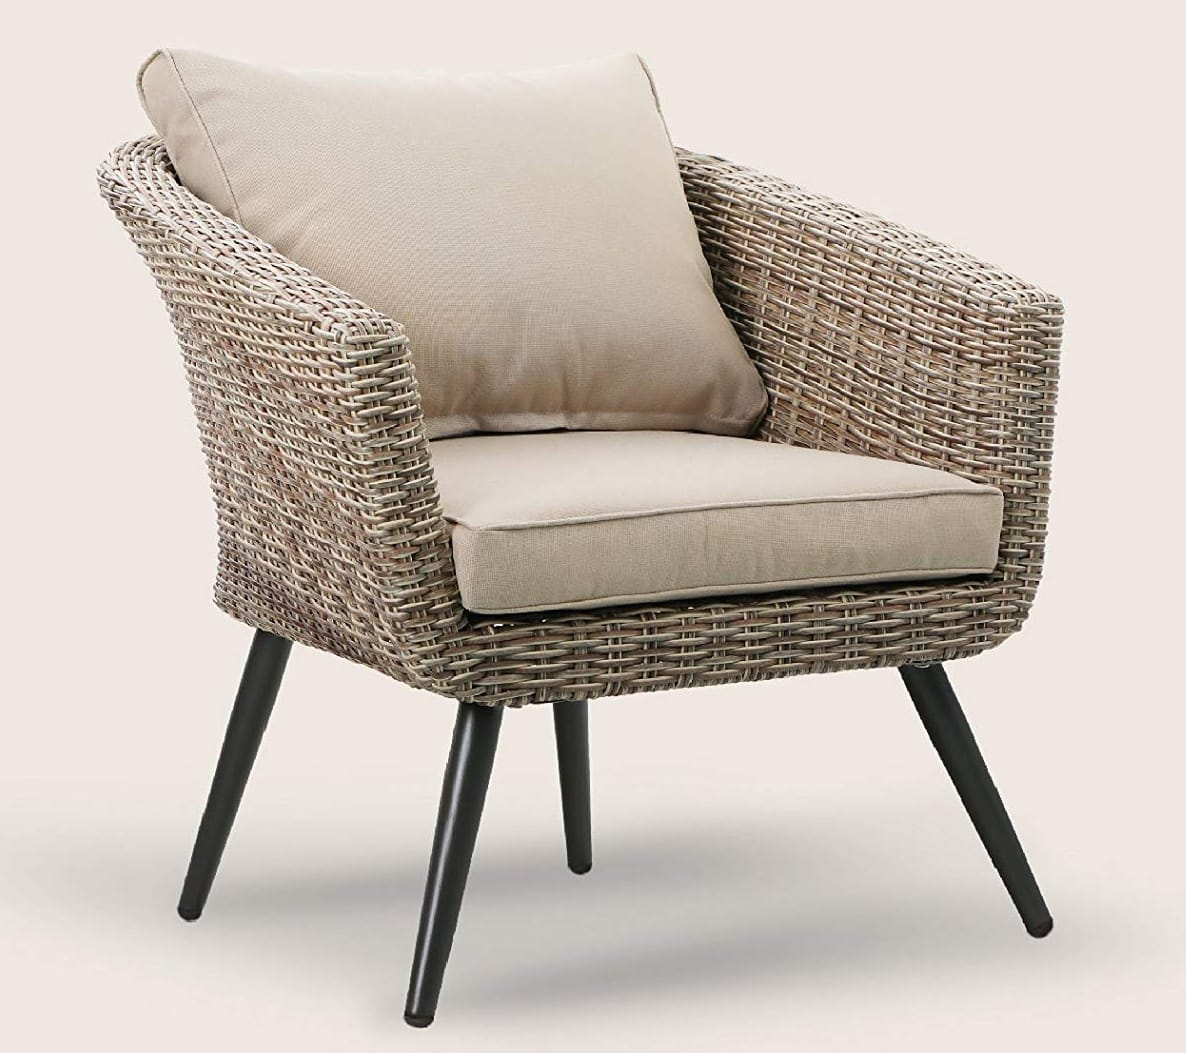 Brushed Rattan Outdoor patio chair